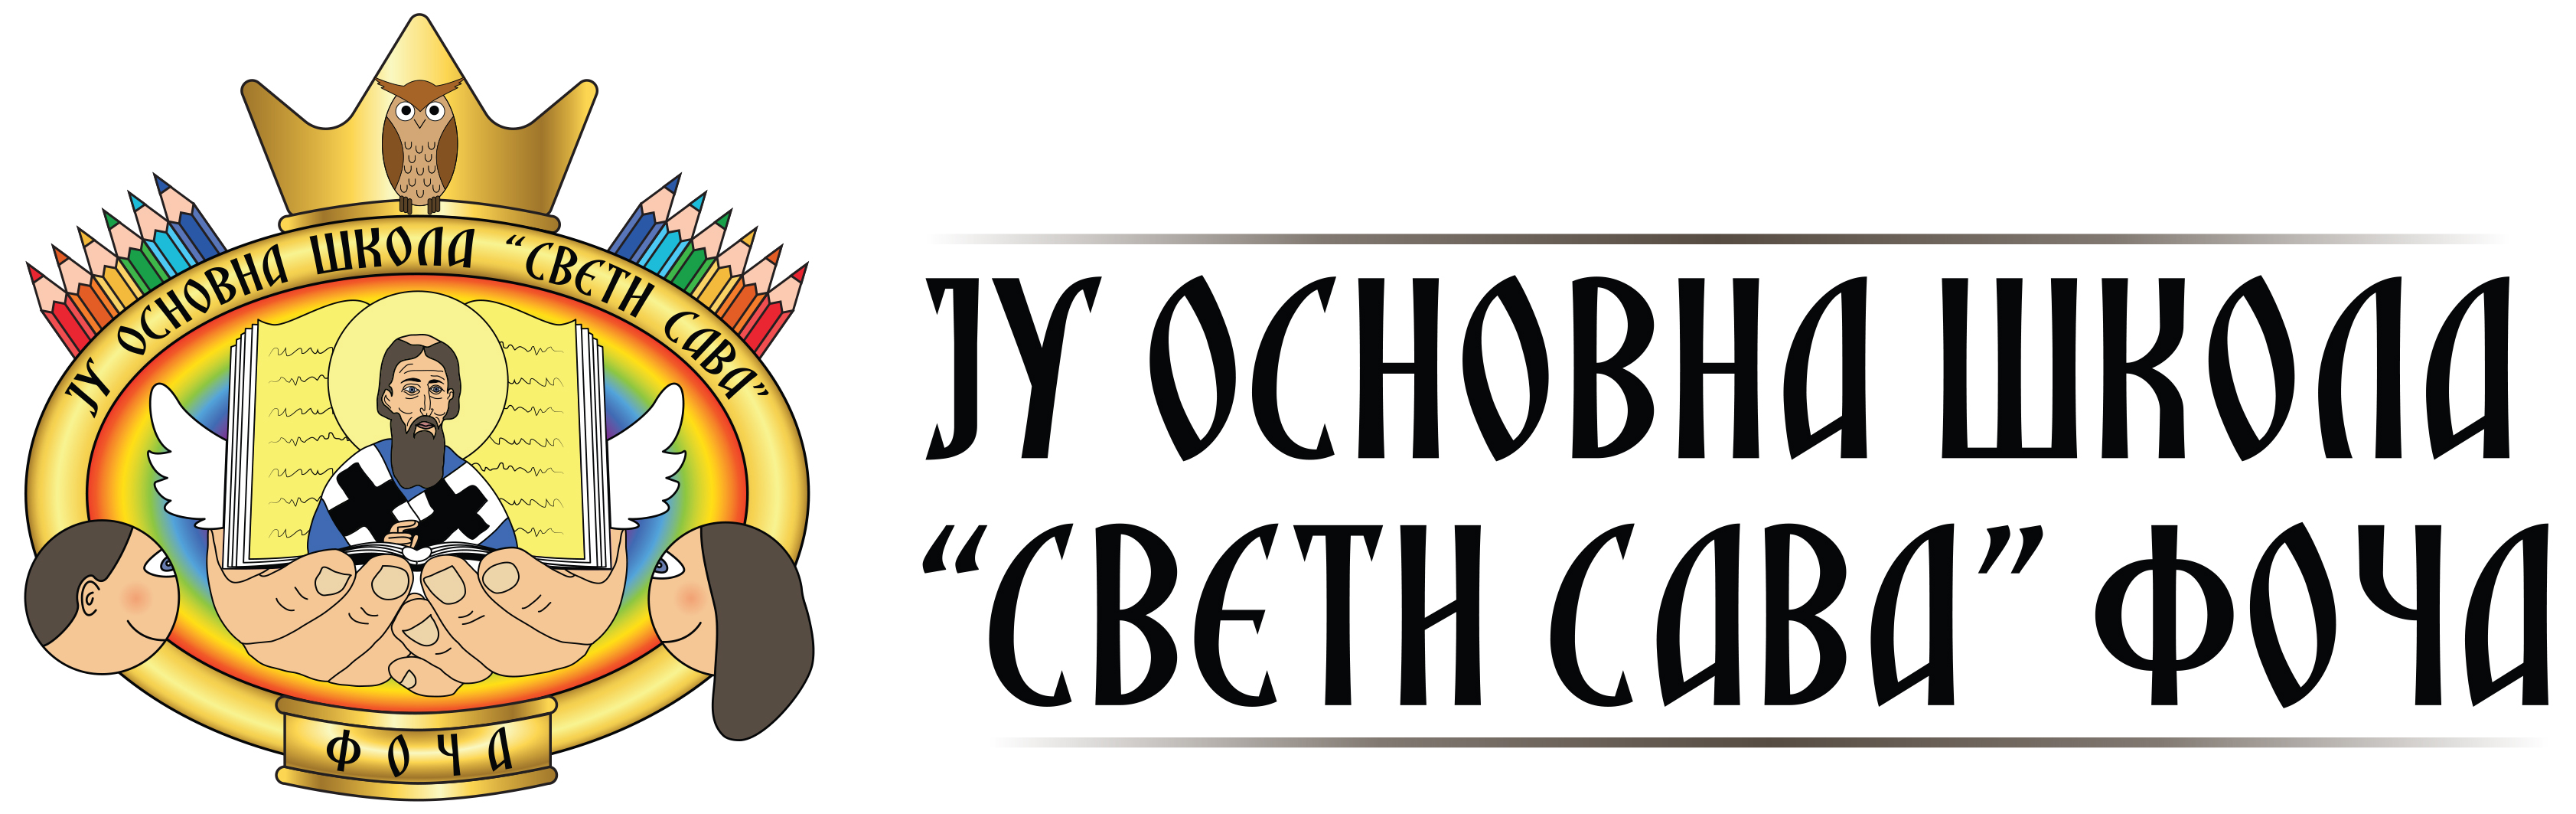 "ЈУ ОШ ""СВЕТИ САВА"""